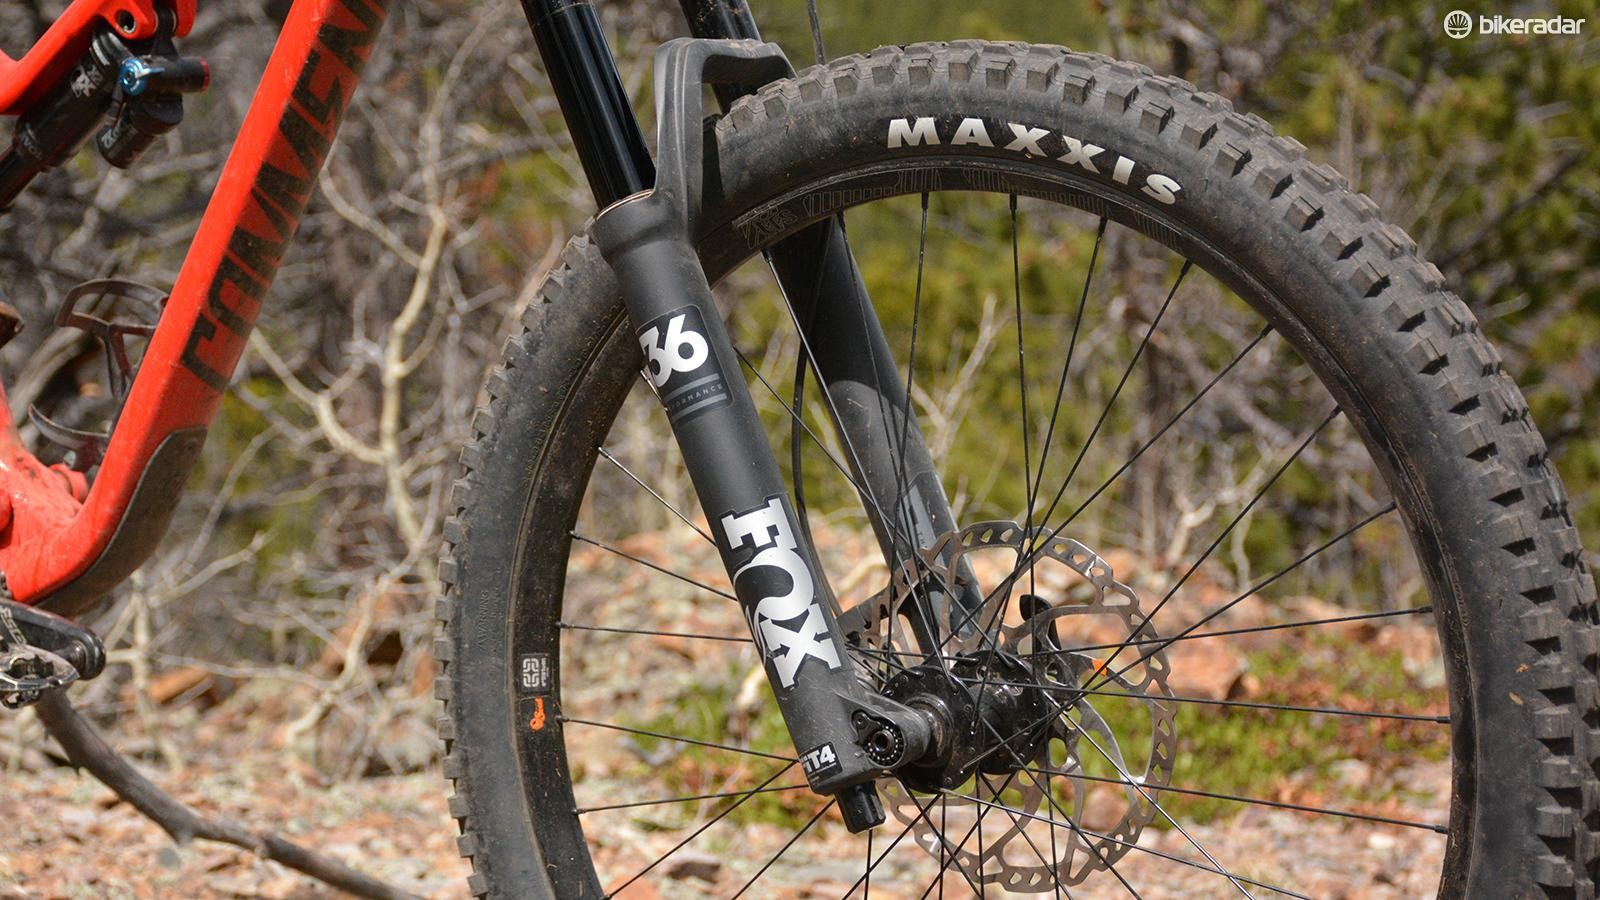 Even with the less expensive Performance internals, the Fox 36 is a very, very good fork